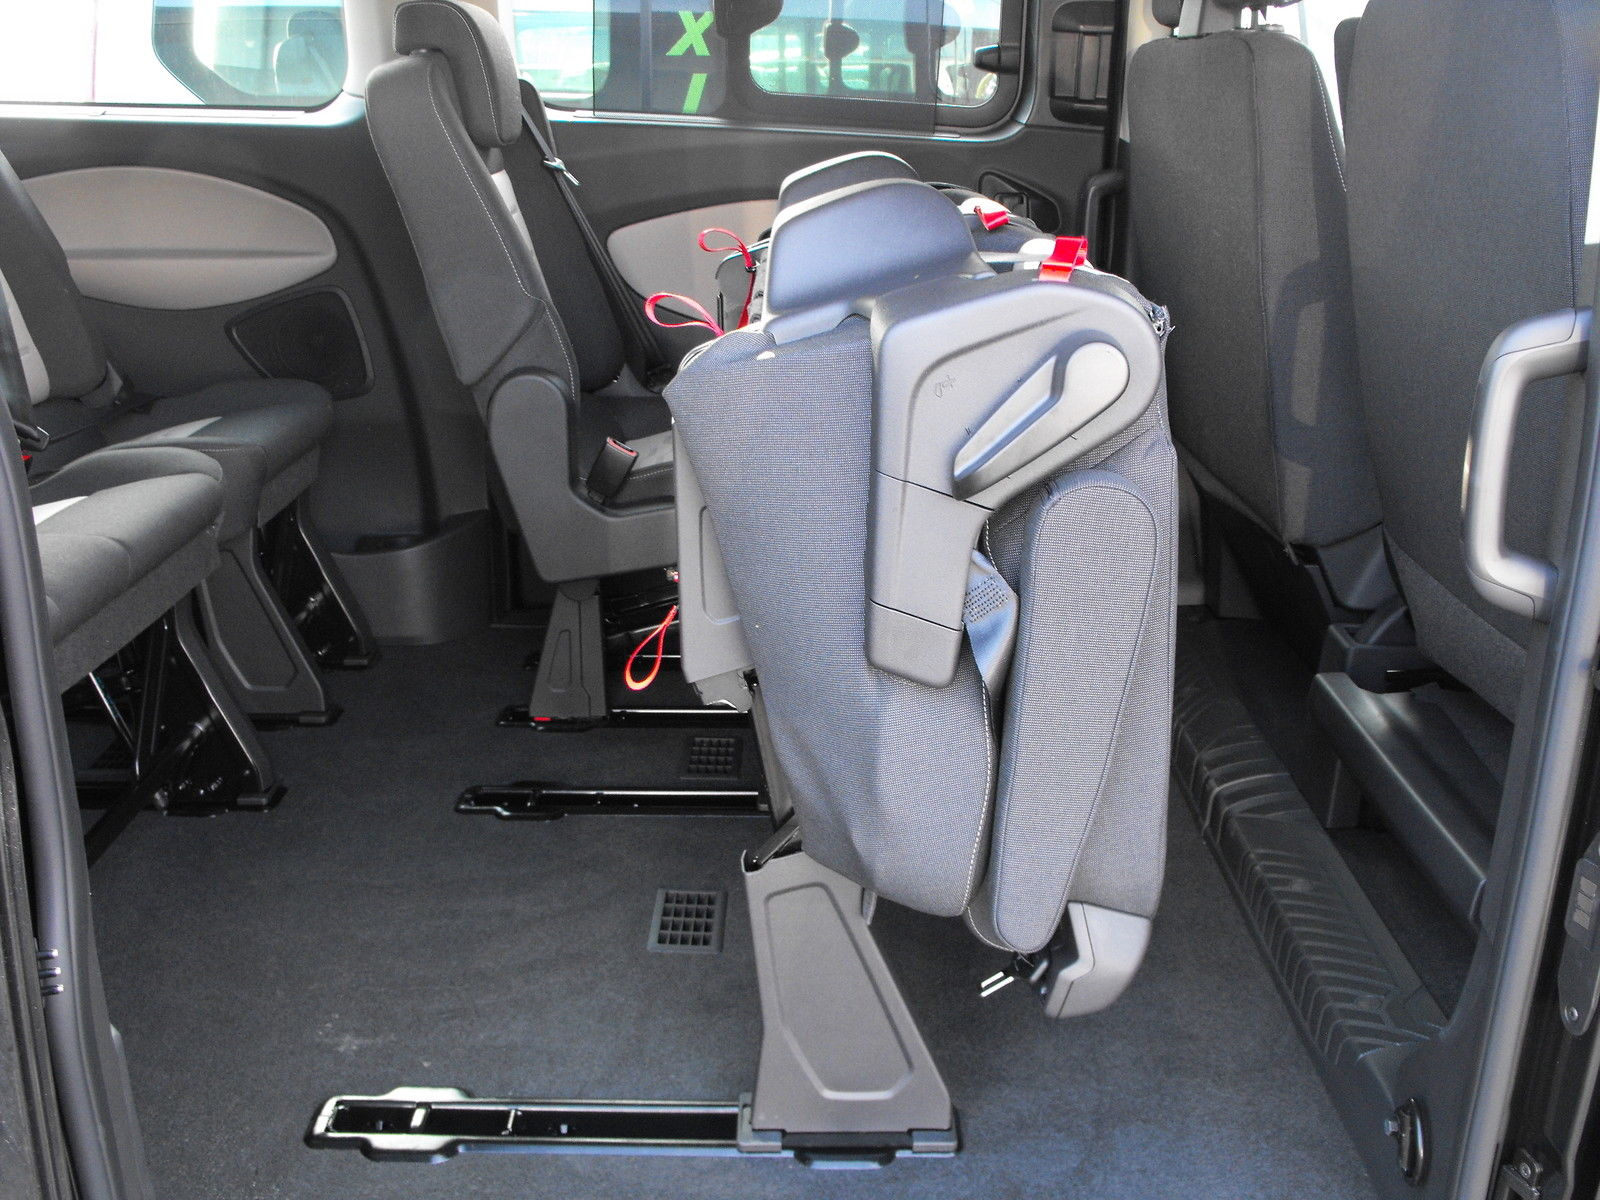 Transit Connect Rear Bench Seat